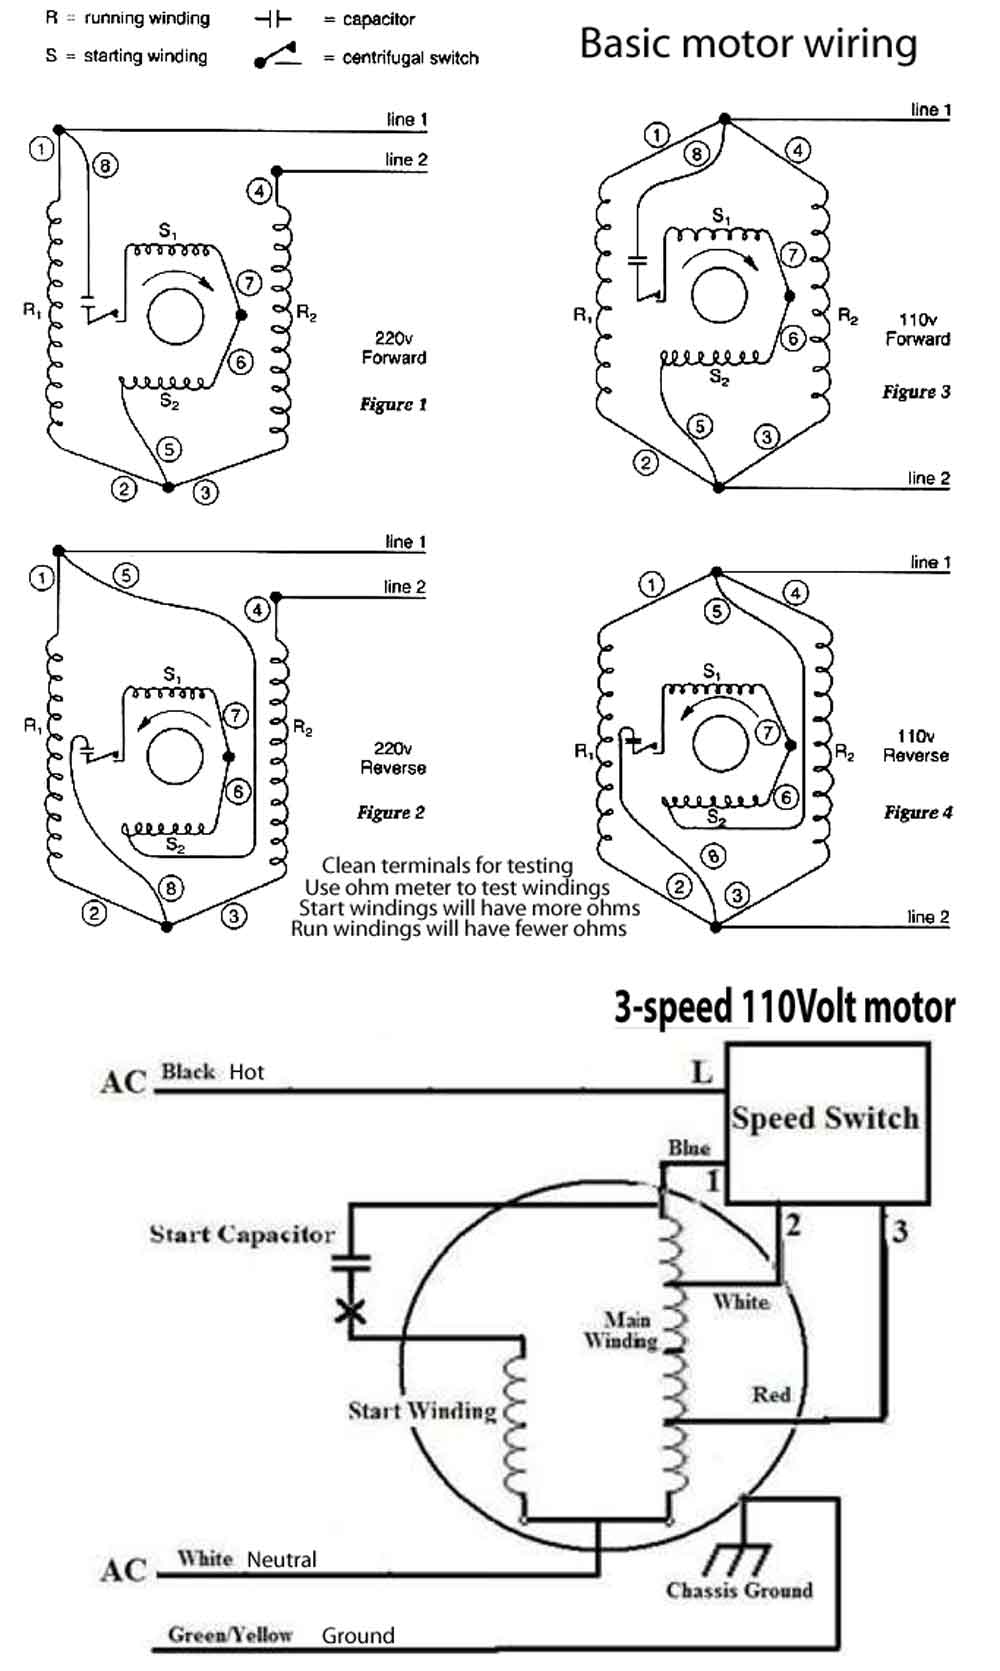 Motor wiring 500 100 [ motor diagram wiring ] windshield wiper motor wiring  at n-0.co